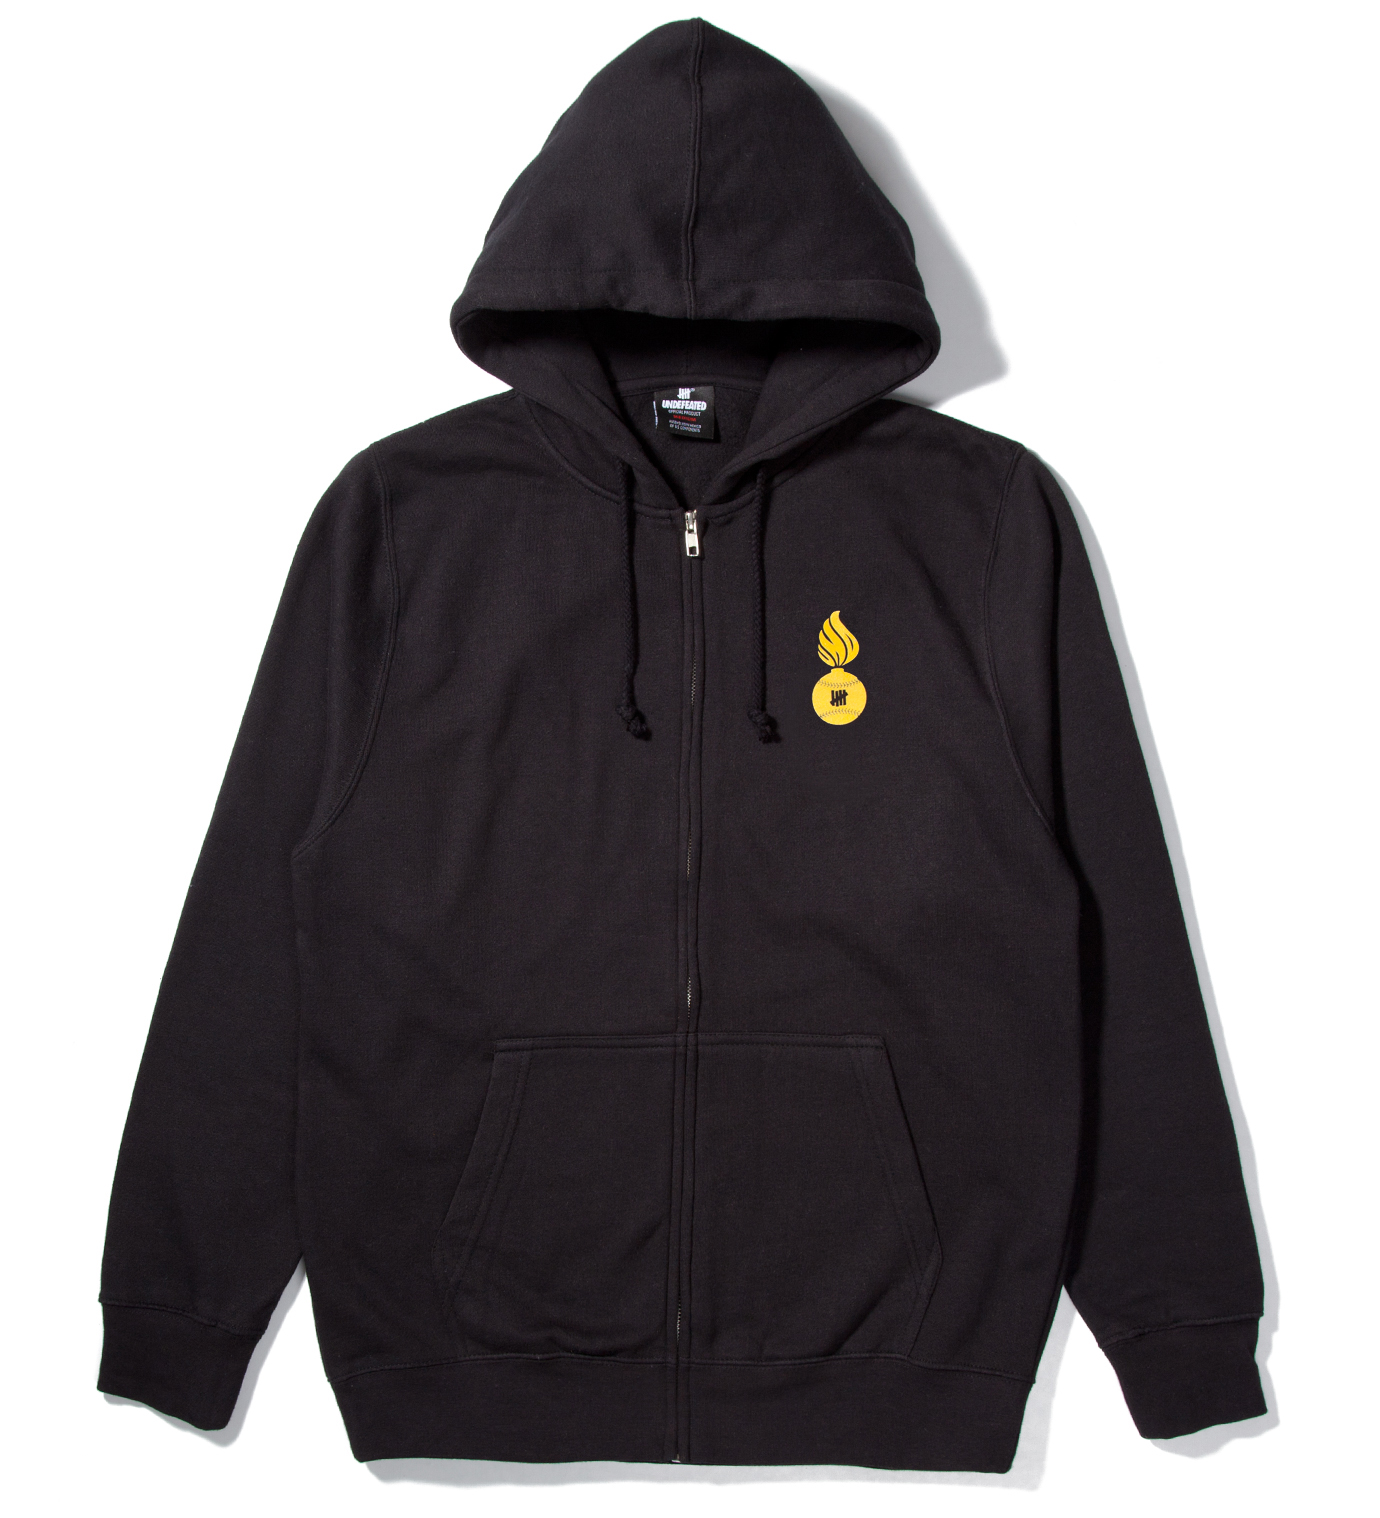 UNDEFEATED Black No. 1 Bullet Zip Hoodie